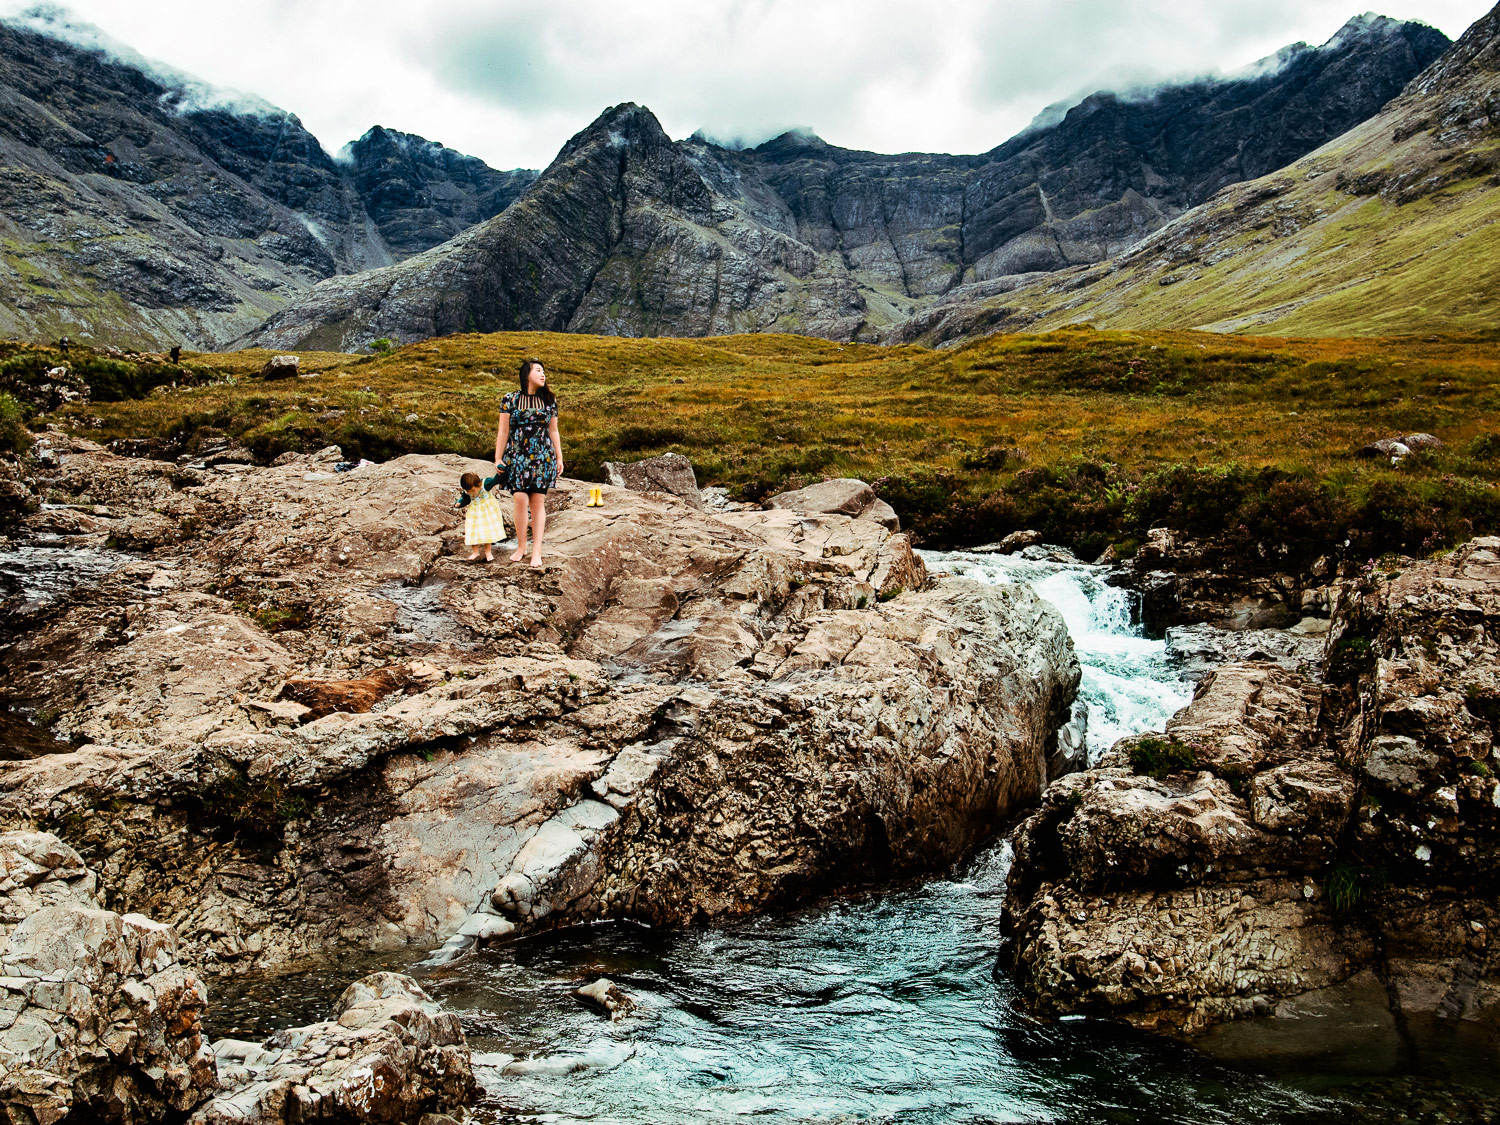 Exploring the rocks next to the isle of Skye's famous fairy pools.